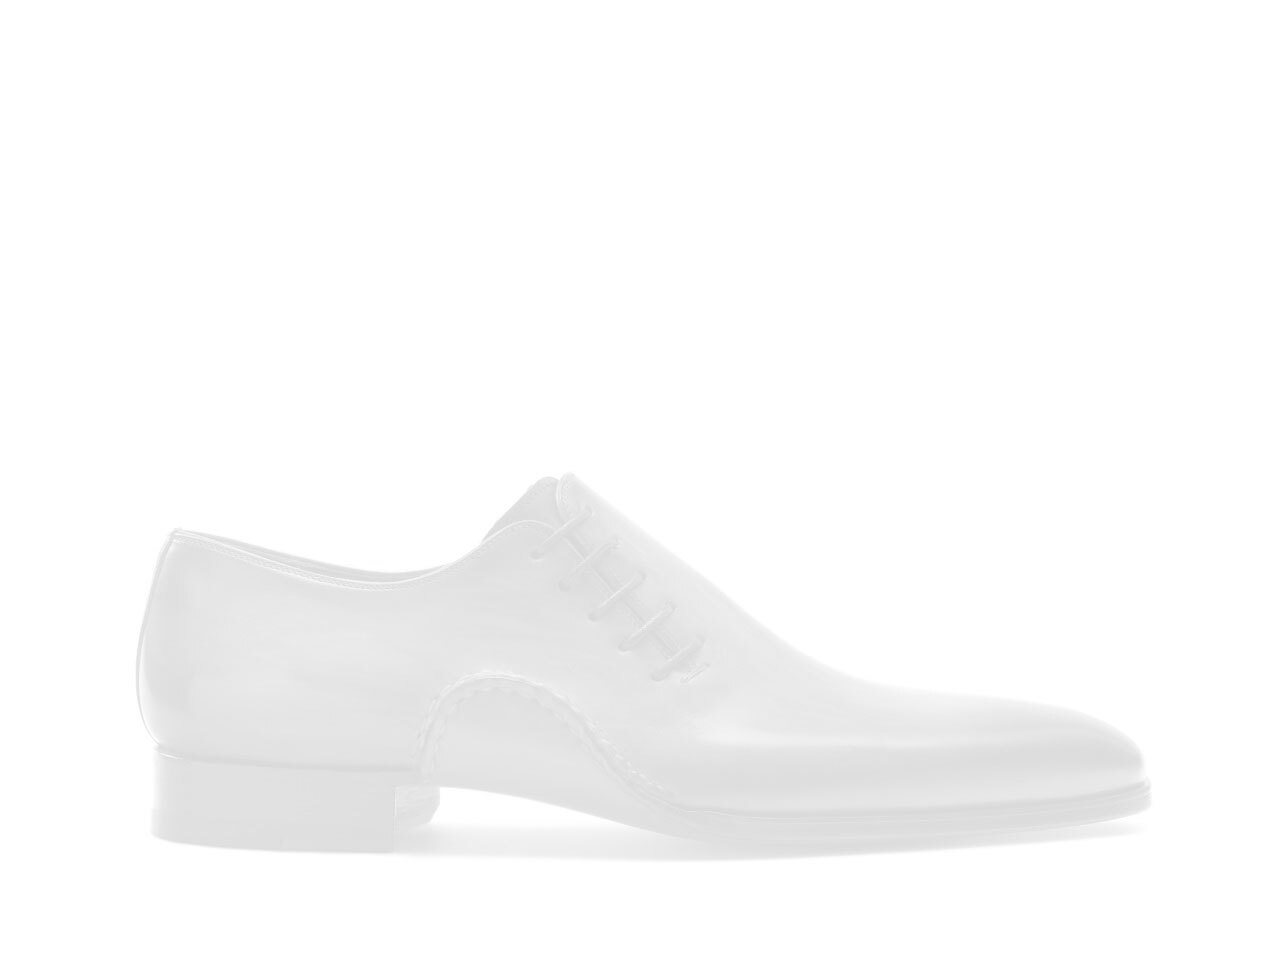 Side view of the Magnanni Reina Torba Men's Sneakers